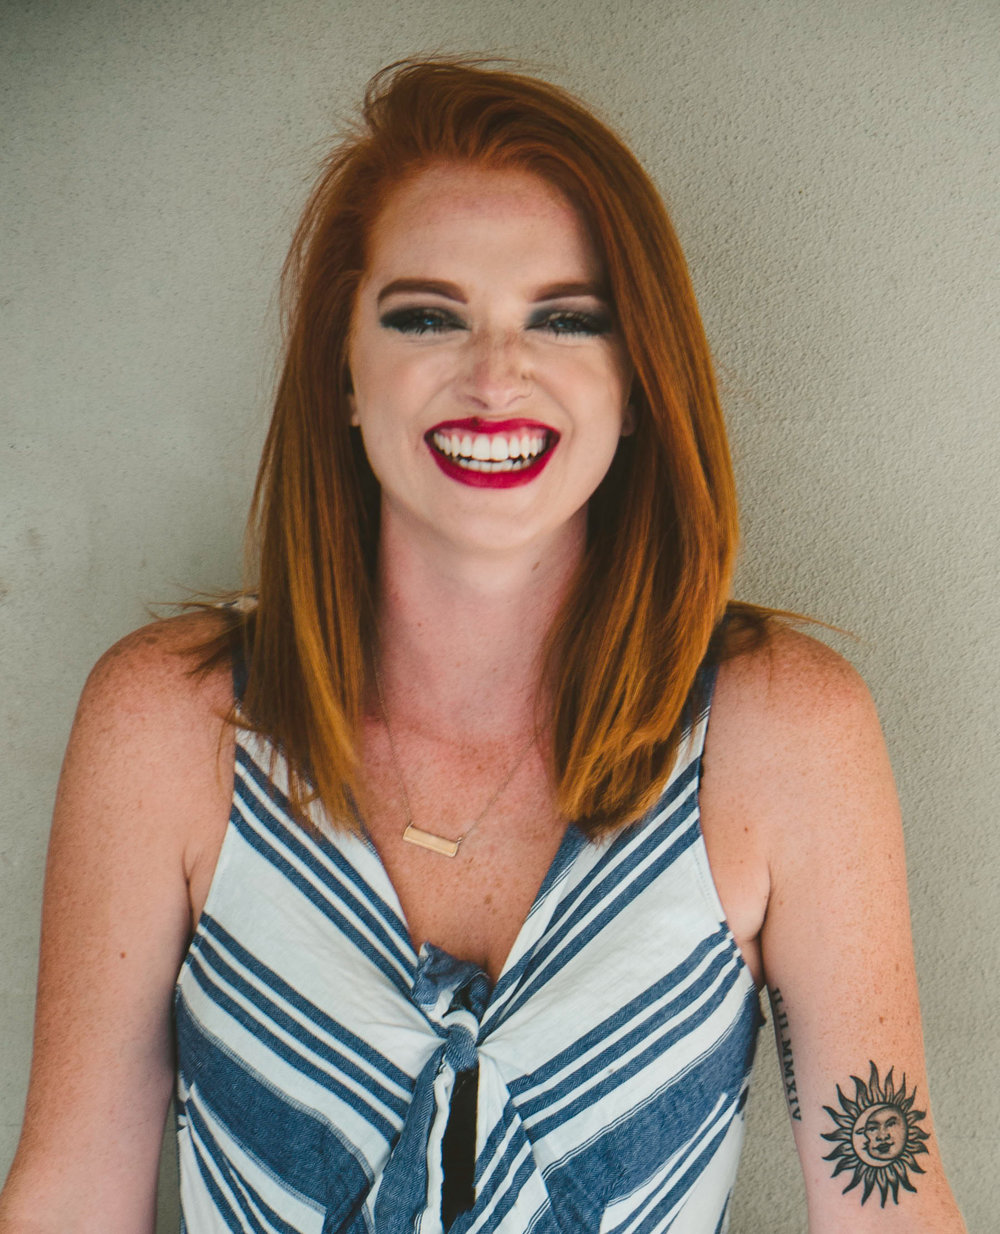 Katie Hewett - What inspired you to become an ambassador for MISSIO Hair? What do you love about the company?I love that communities are coming together to stop human trafficking. I am excited to be able to talk about and show my passion for this issue and be able to help someone down the road!Tell us about your connection to the issue of human trafficking. Why do you think it is important to fight it? I 110% think it's important to fight it. Having someone in my family who has gone through it. It isn't easy but goodness gracious I will do everything in my power to help them!!What is your favorite MISSIO Product and why? Most definitely the styling spray! The smell is so refreshing and works amazing...volume and shine is most definitely important!What is your favorite thing about being in the beauty industry? Do you have a favorite type of service your provide your clients?Making people smile! The look and their faces when I am done is why I love my job and giving tips on how to achieve easy looks at home so that they can feel fabulous! Anything else you would like to add/tell us about yourself? I love what I do and am excited to continue to share my passion about why I do it!Visit Katie at Beauty Bar Boutique in Wilmington, NC!